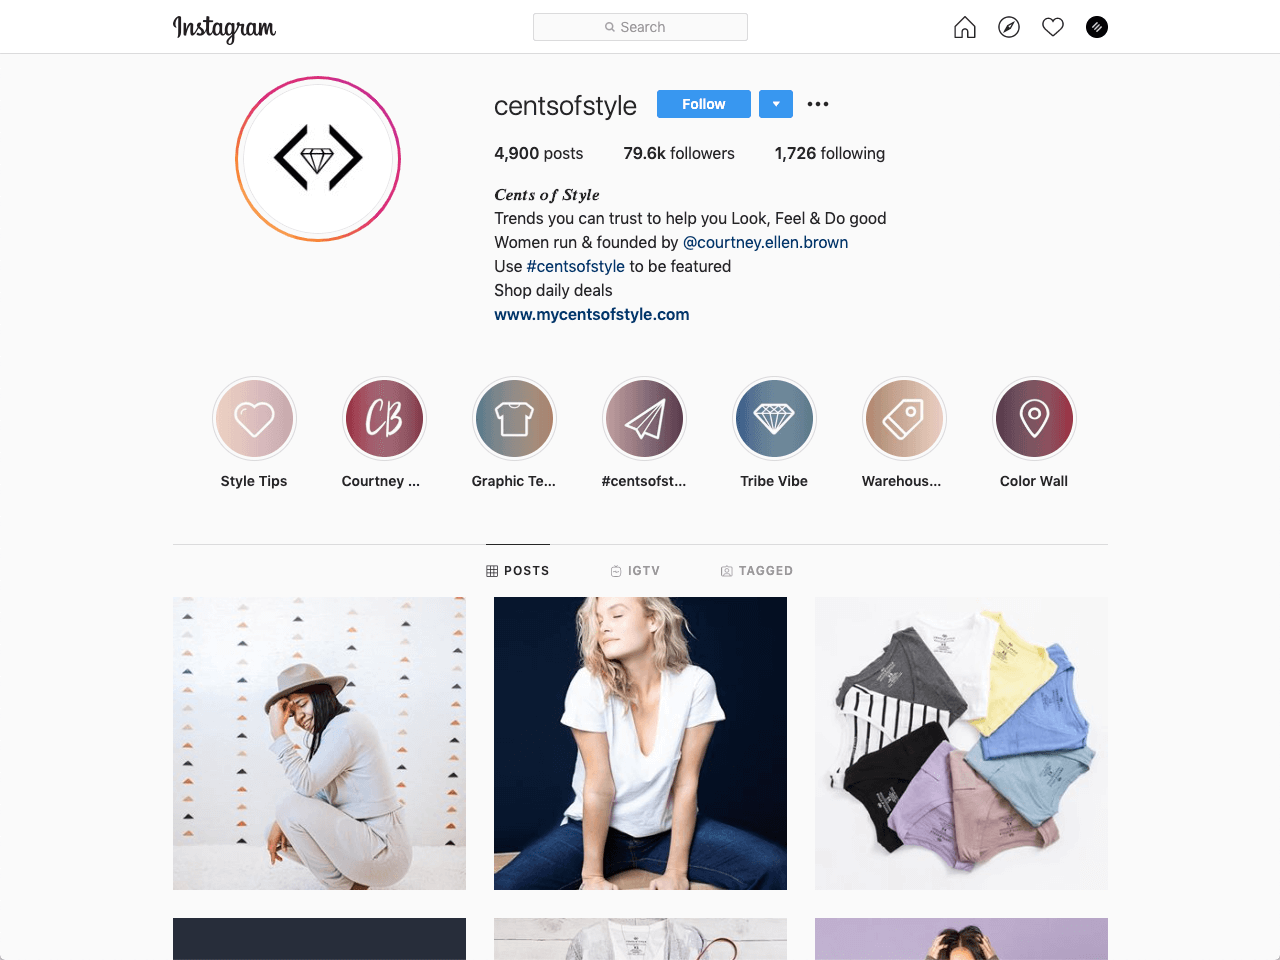 An informative bio helps you sell products on Instagram